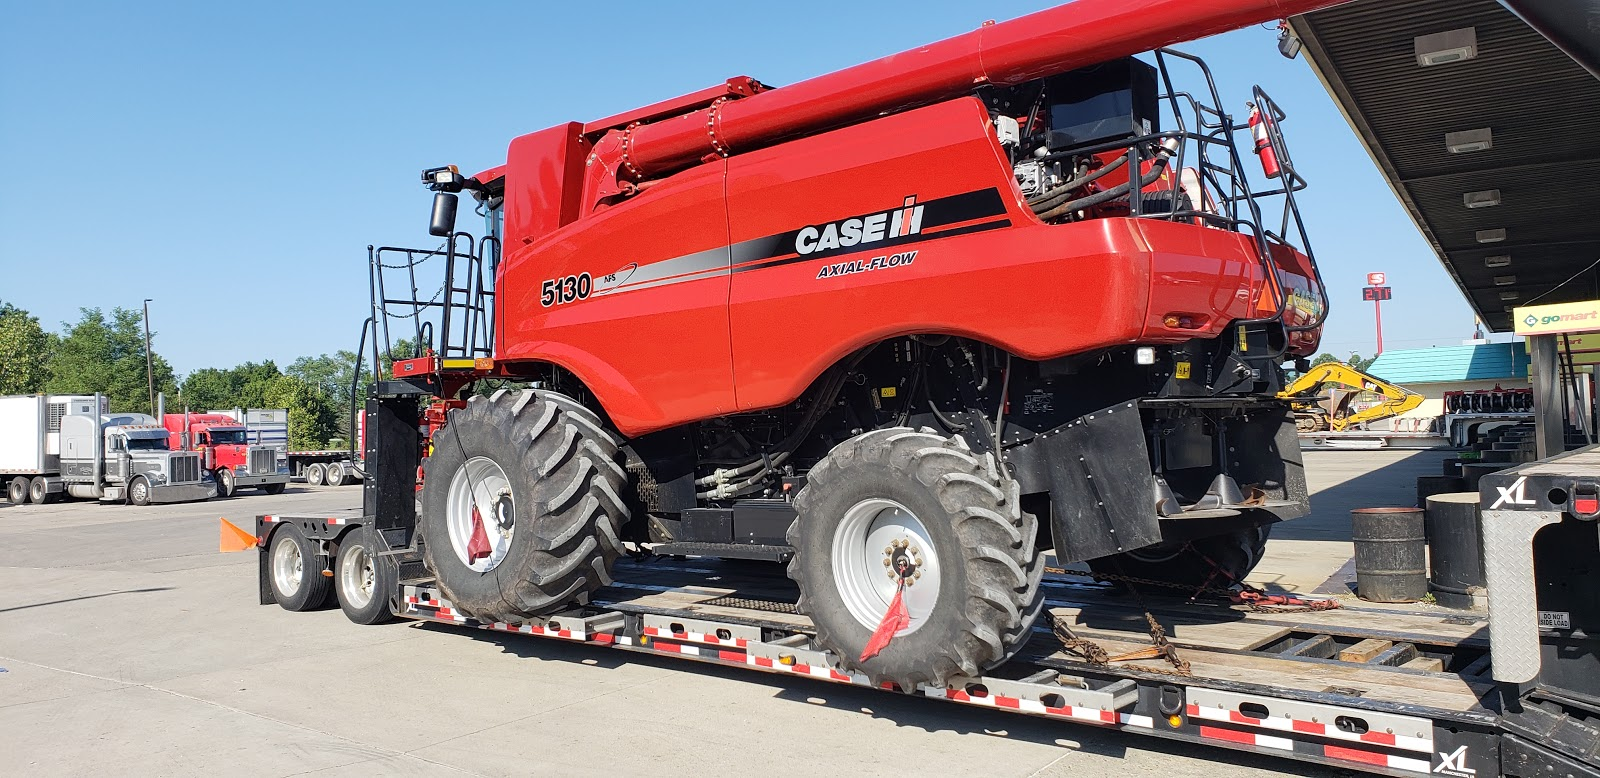 2013 Case IH 5130 being transported